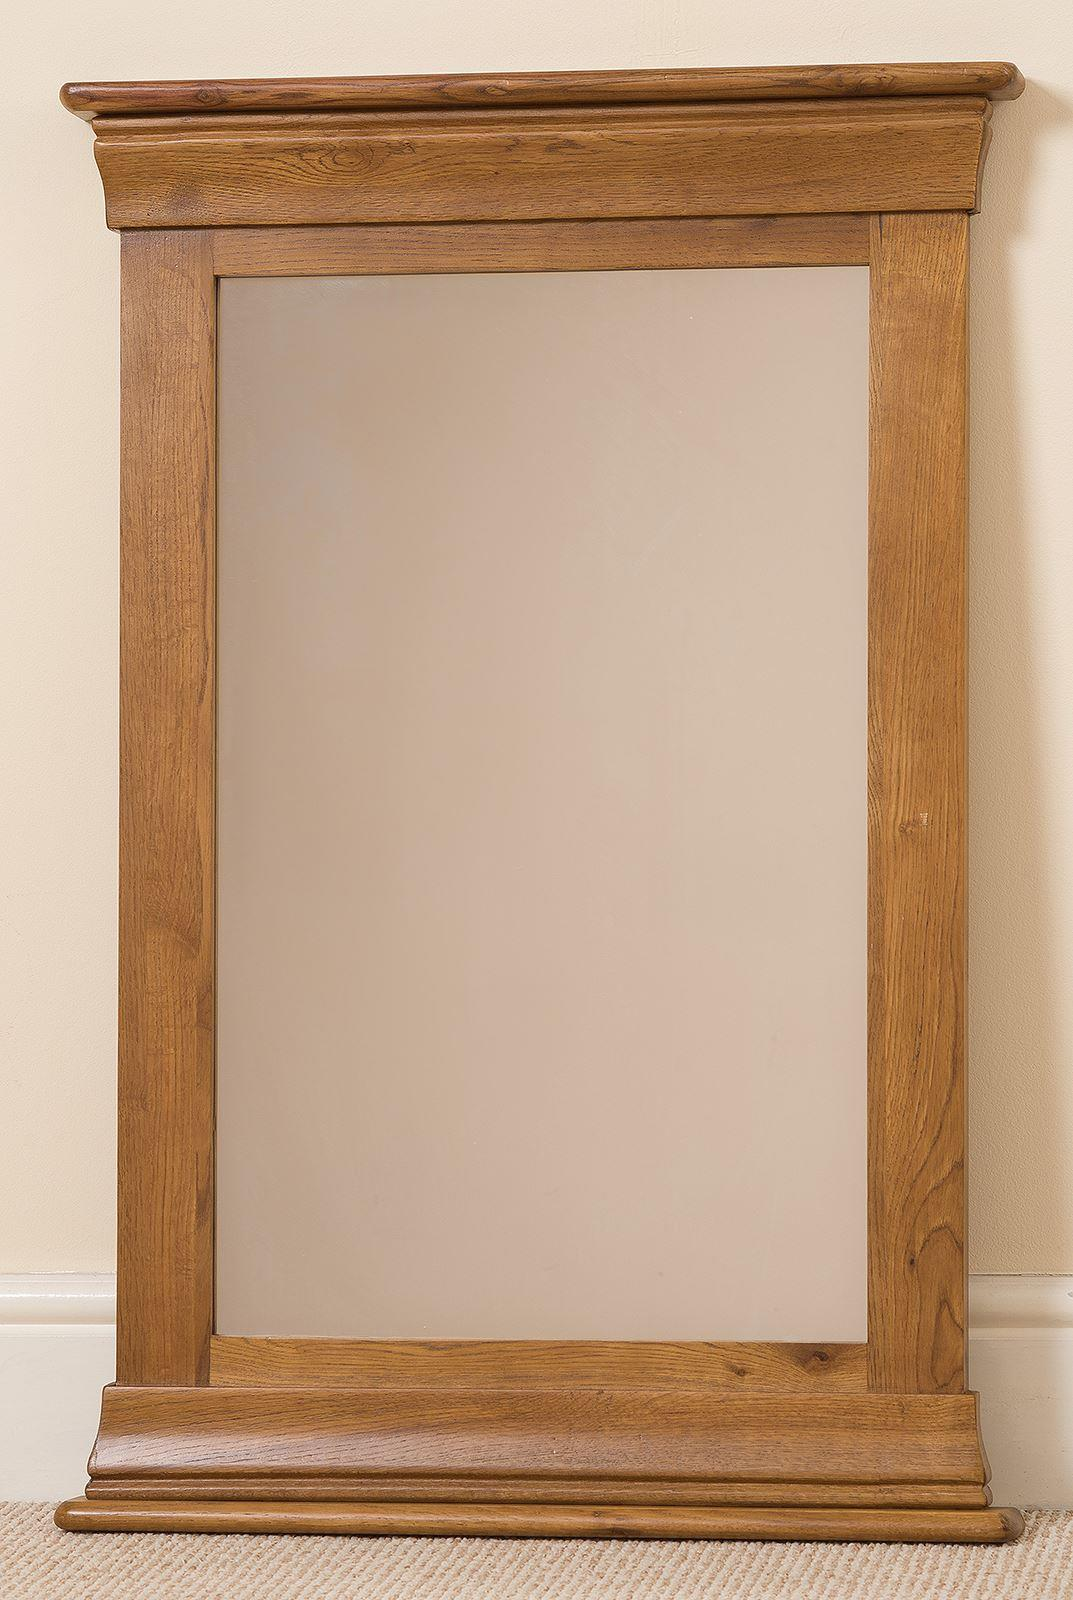 French Chateau Rustic Wall Mirror